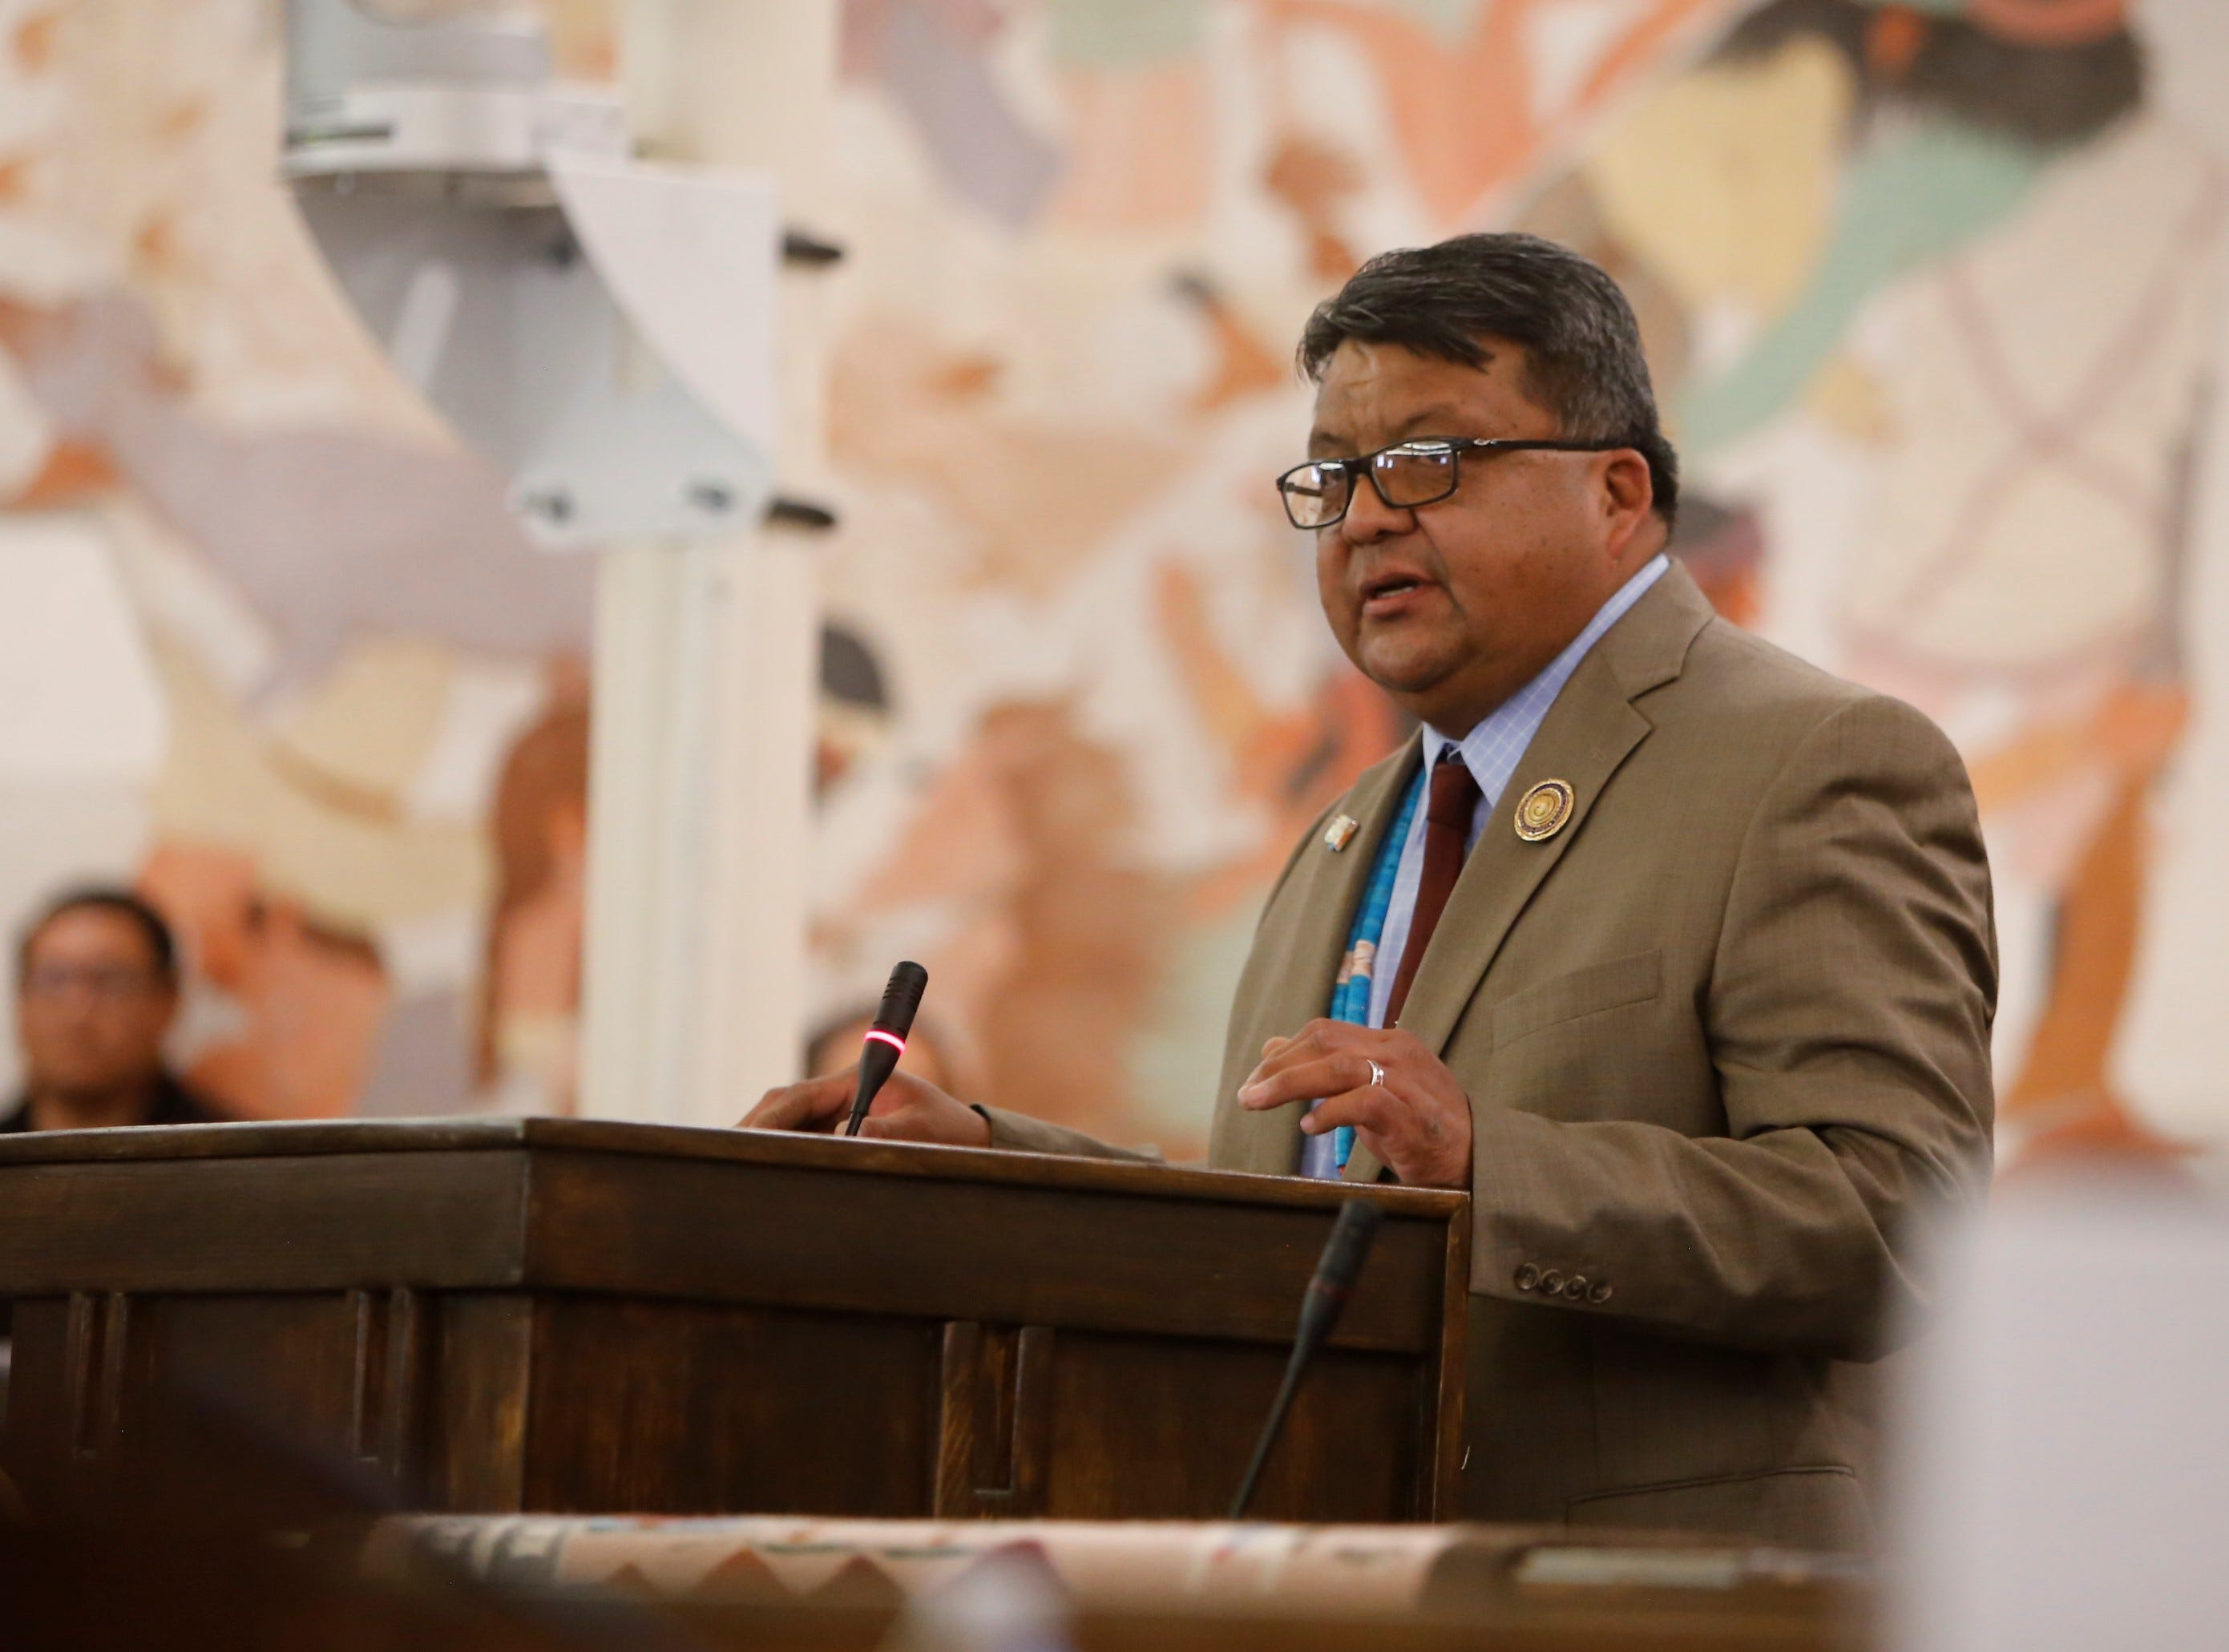 Delegate Edmund Yazzie was nominated to serve as speaker of the Navajo Nation Council. He finished second in the final round of voting for the seat.